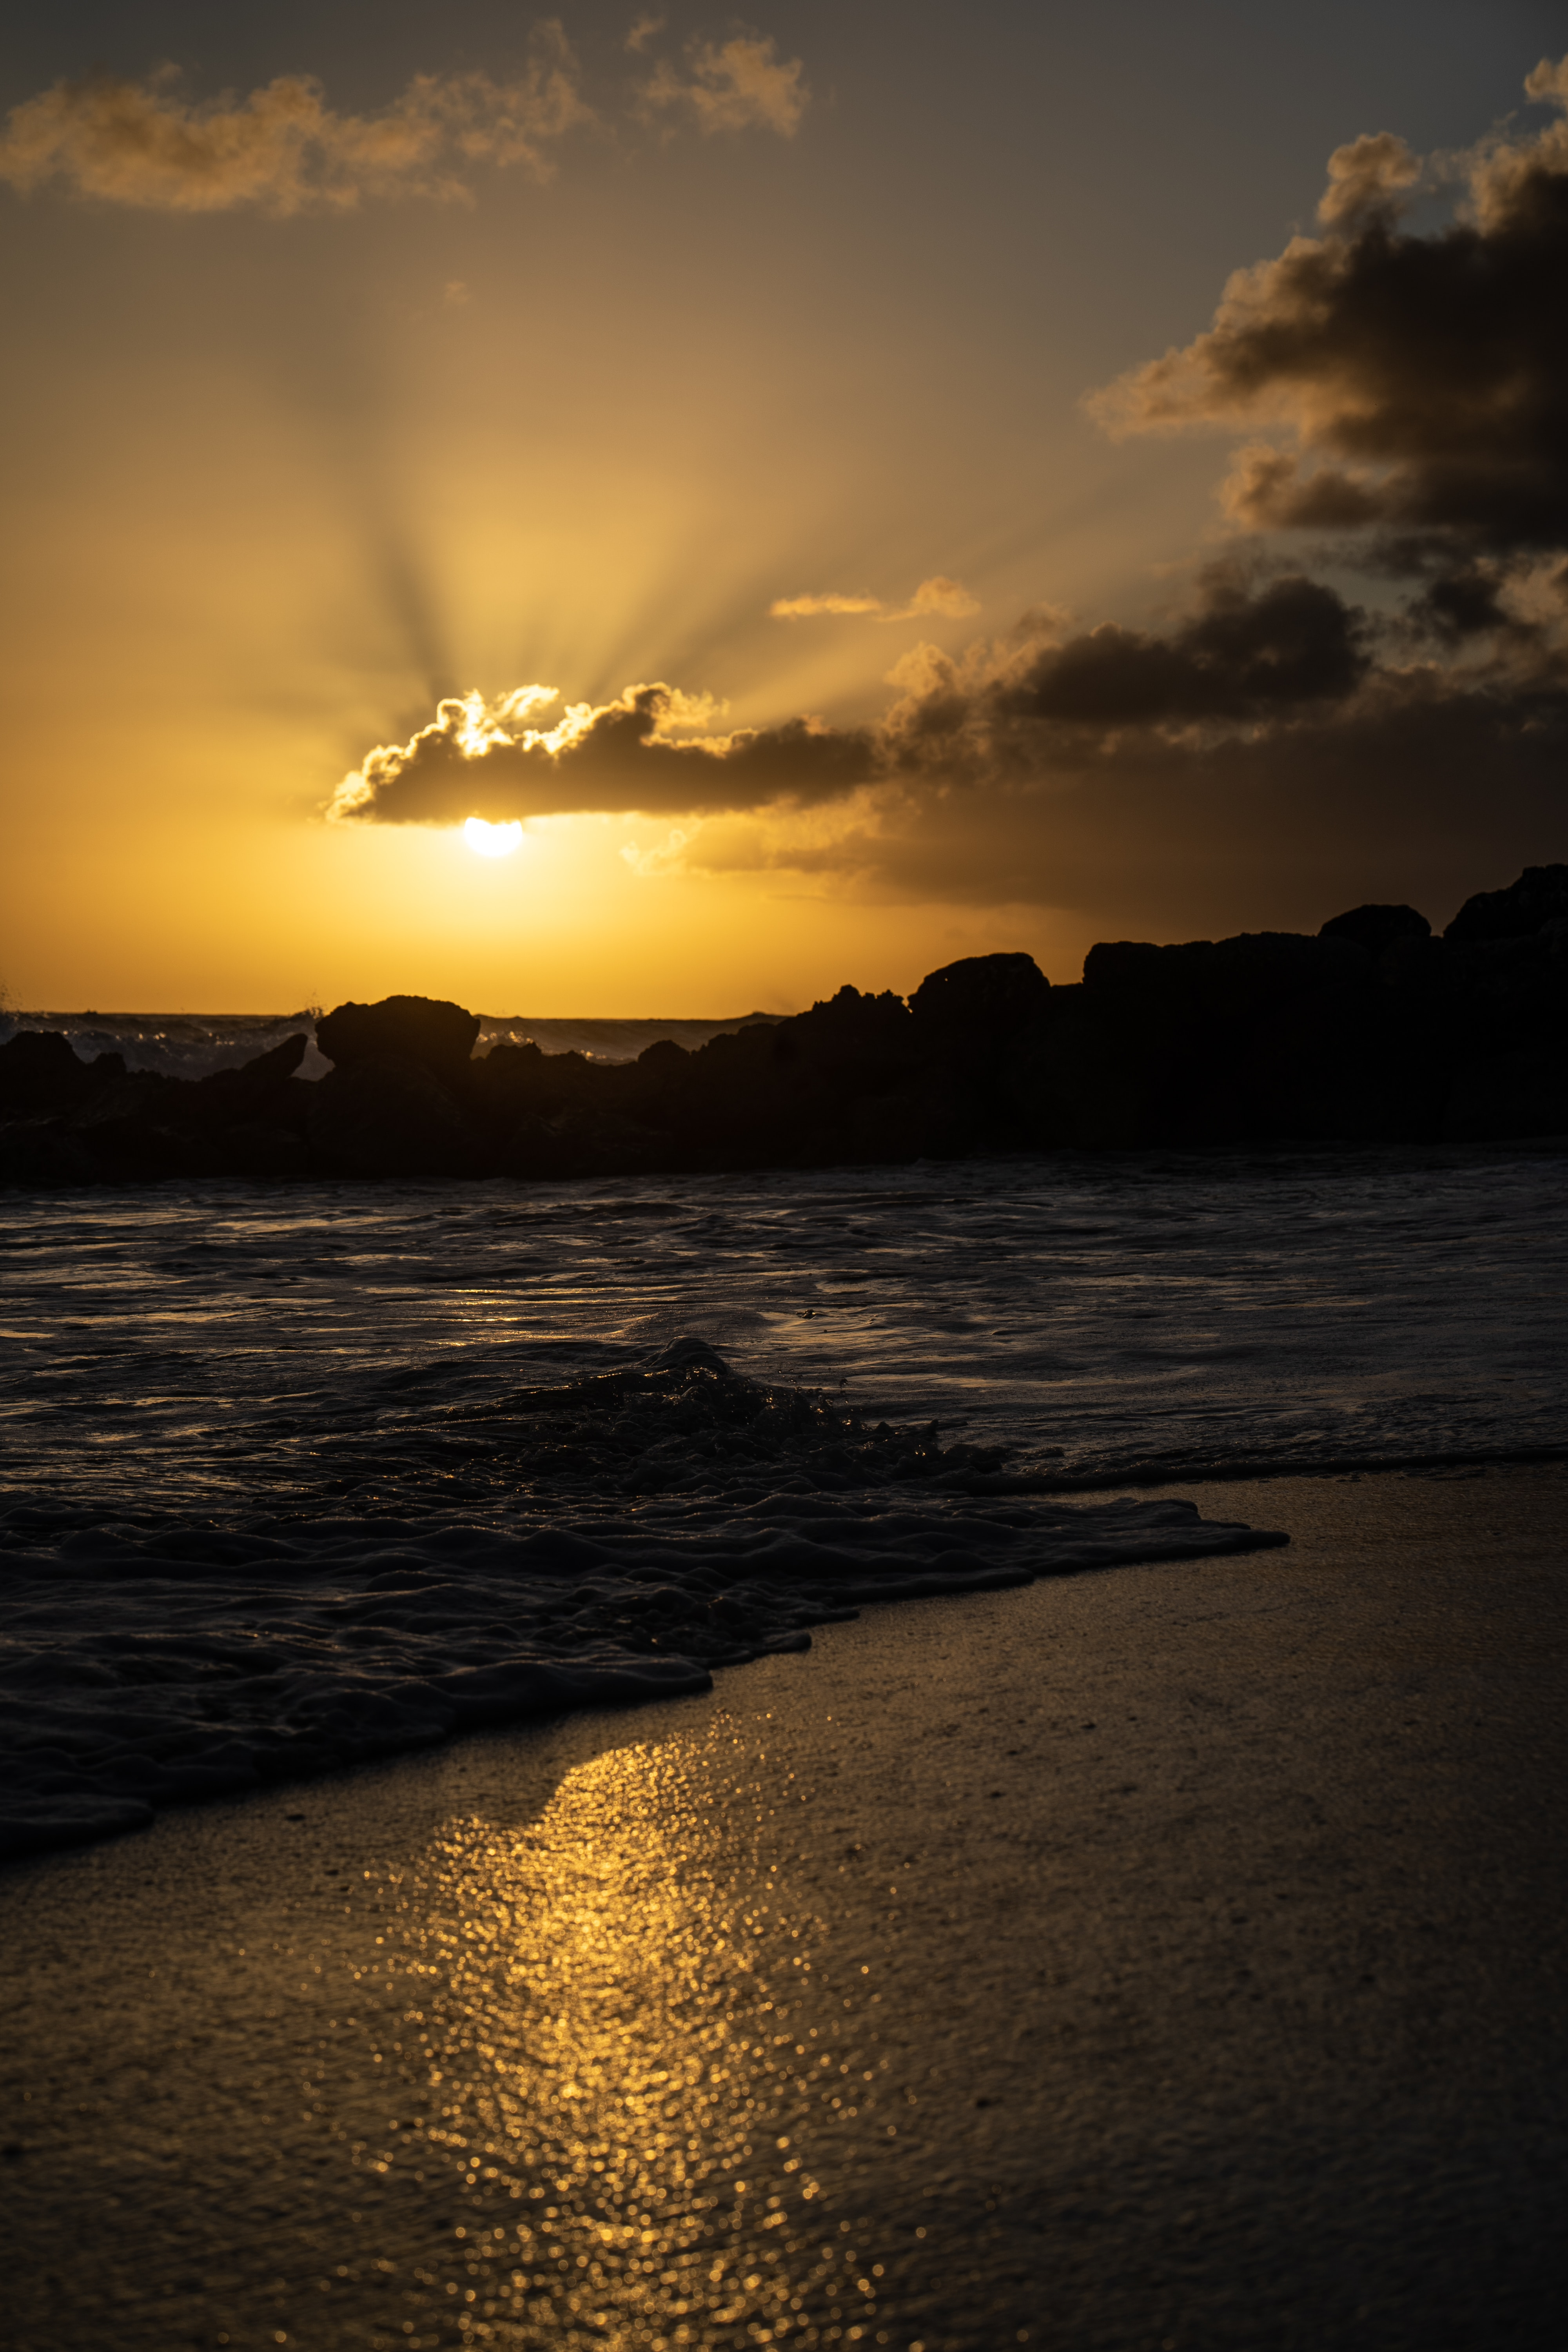 152121 download wallpaper Dark, Sea, Sunset, Dusk, Twilight, Beach, Waves screensavers and pictures for free